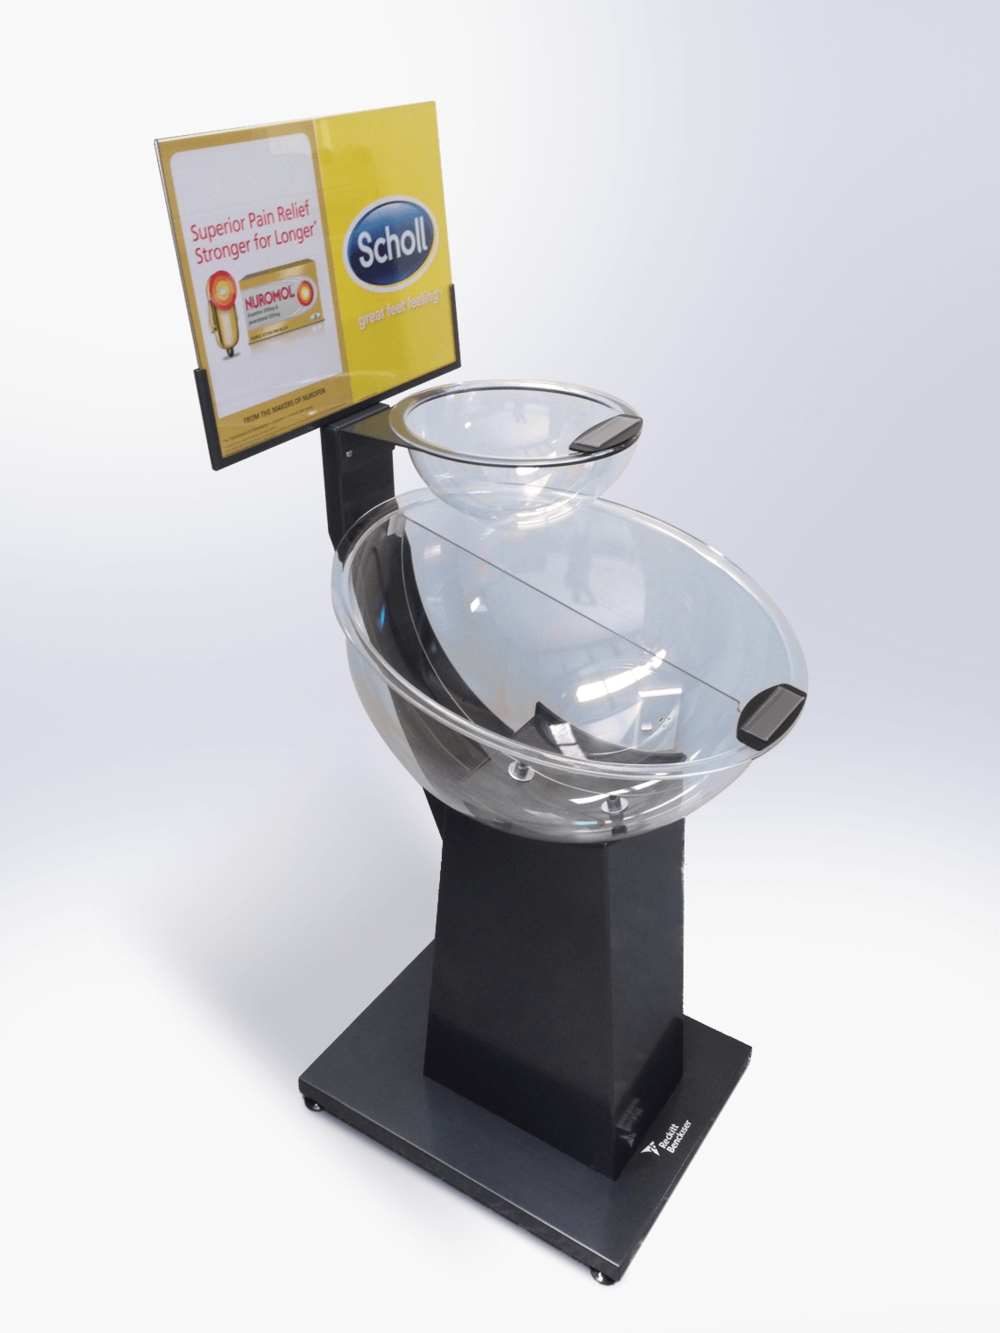 Dual fishbowl unit with changeable graphic areas Display design and manufacture | Visuals | Art | Print | Pack and despatch